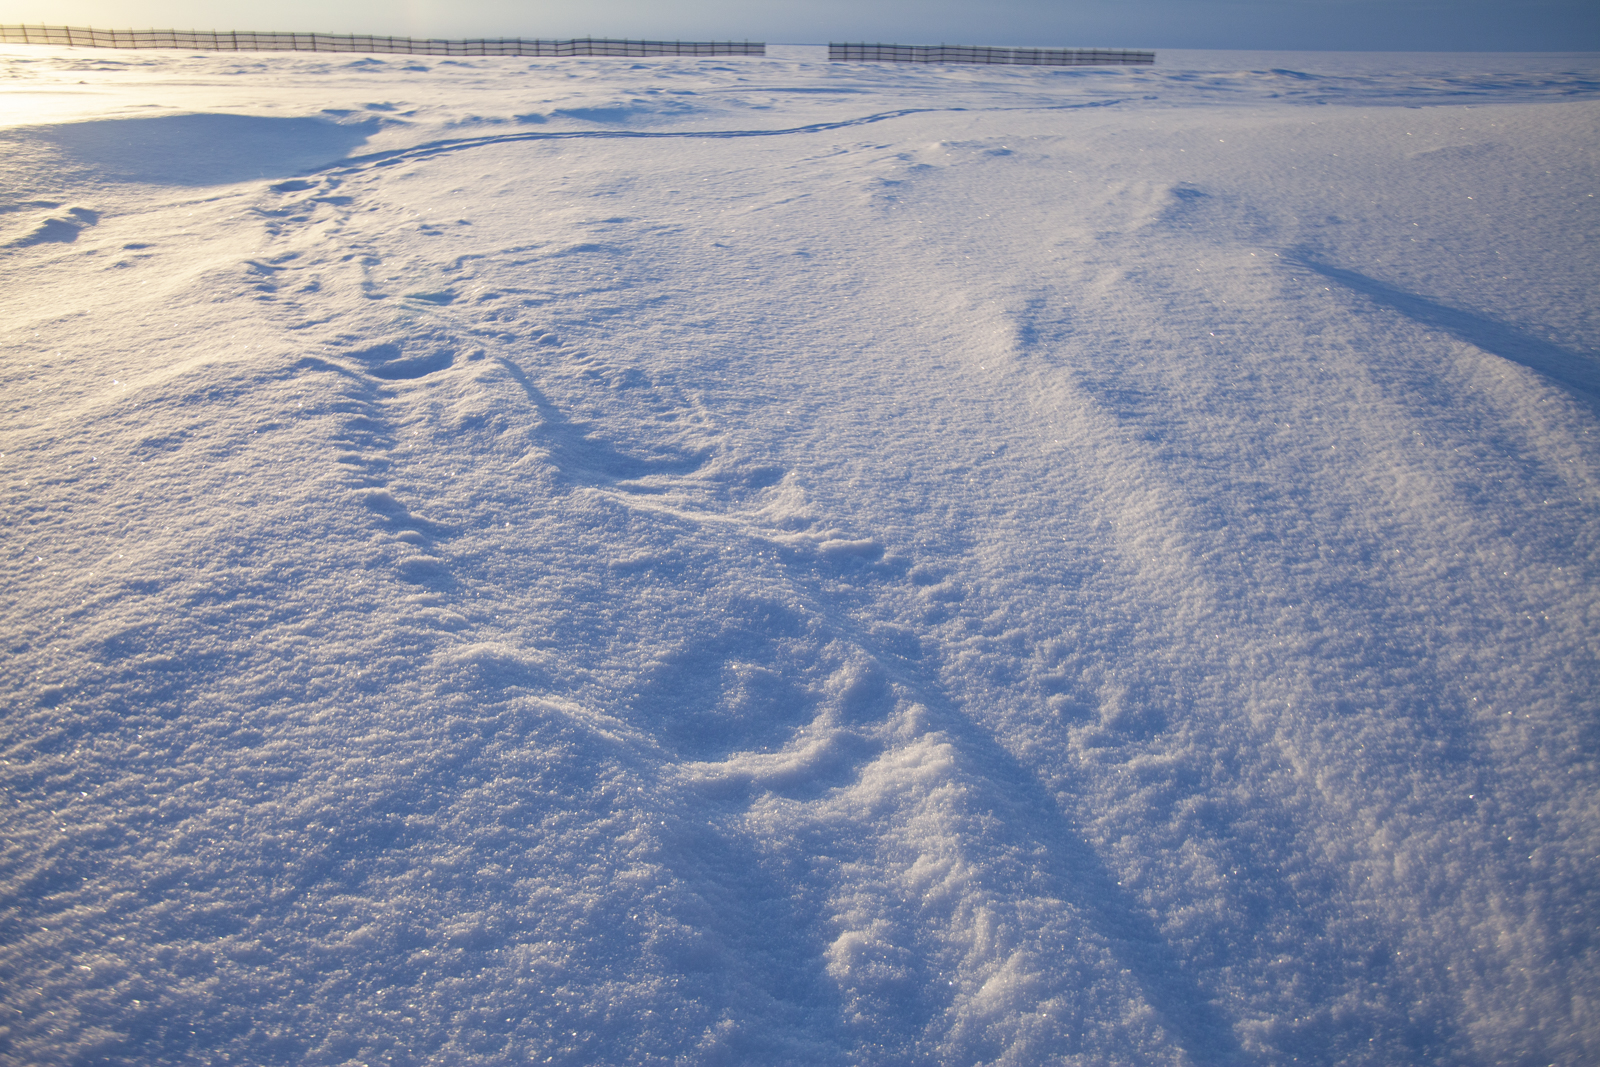 Polar bear tracks in the snow near Kaktovik, Alaska.